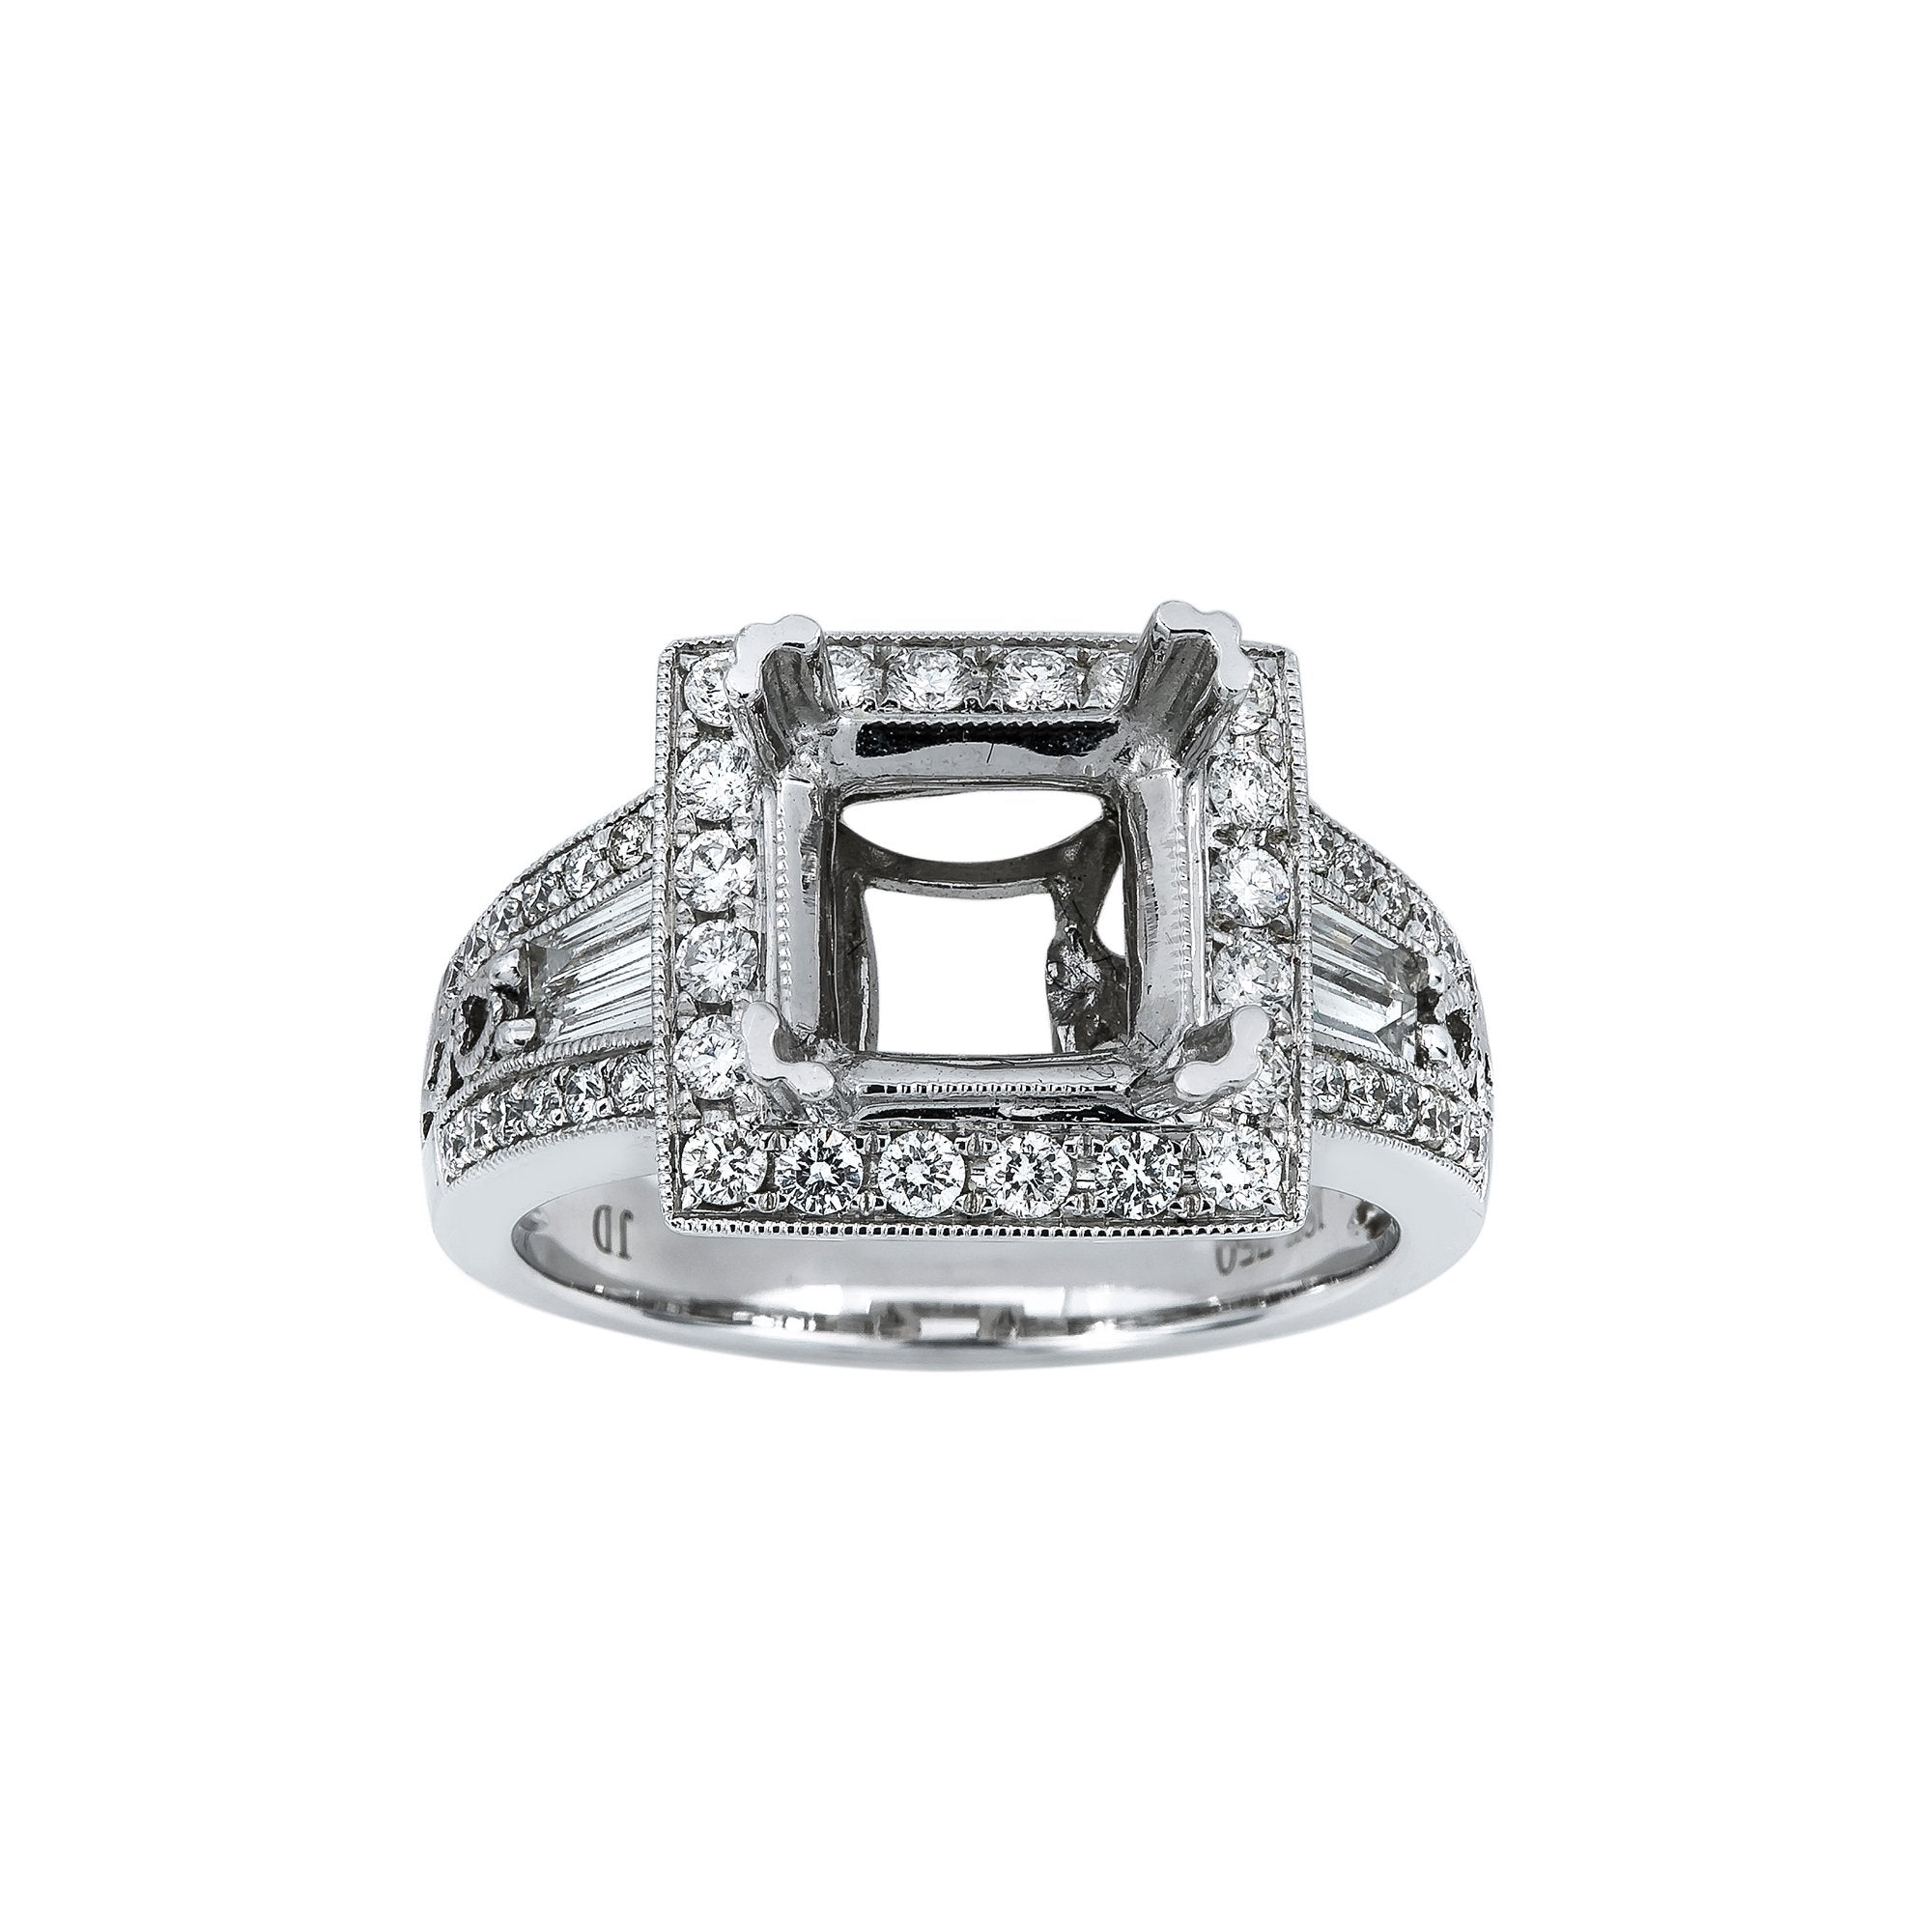 18K White Gold BJ458S2 Women's Ring With 0.88 CT Diamonds